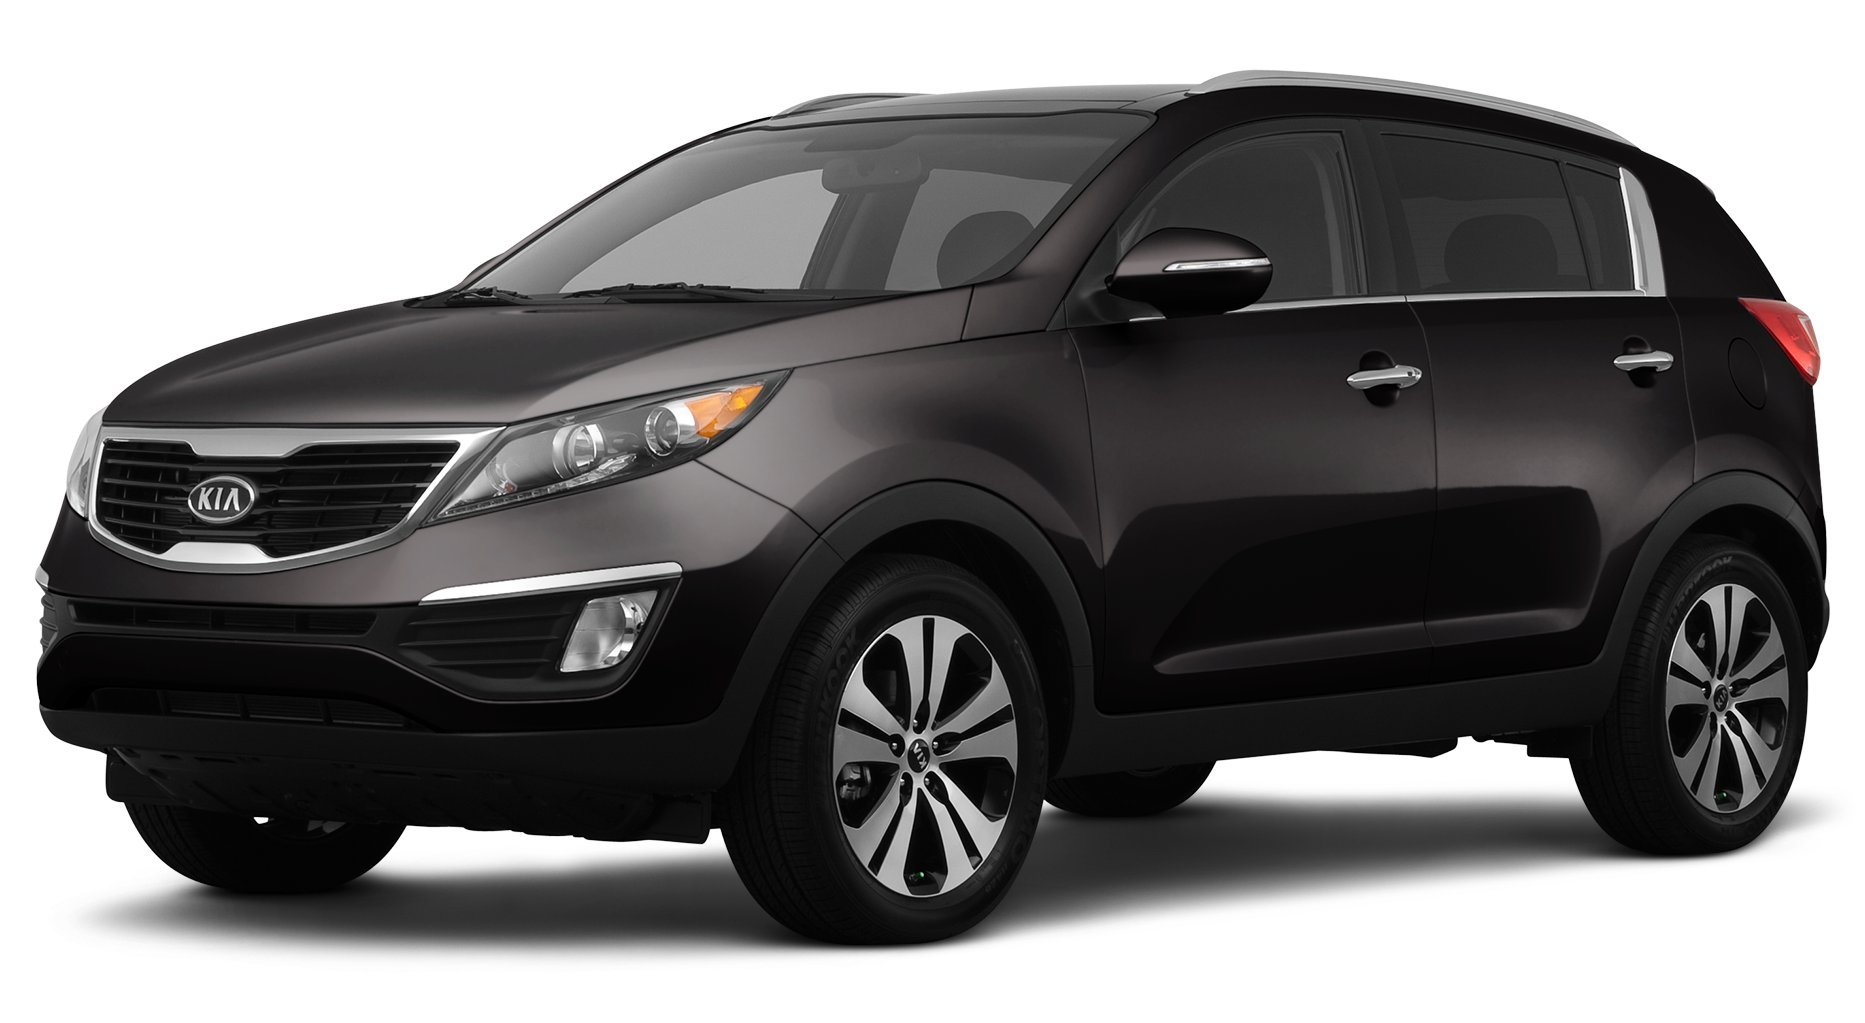 Amazon.com: 2012 Kia Sportage Reviews, Images, and Specs: Vehicles